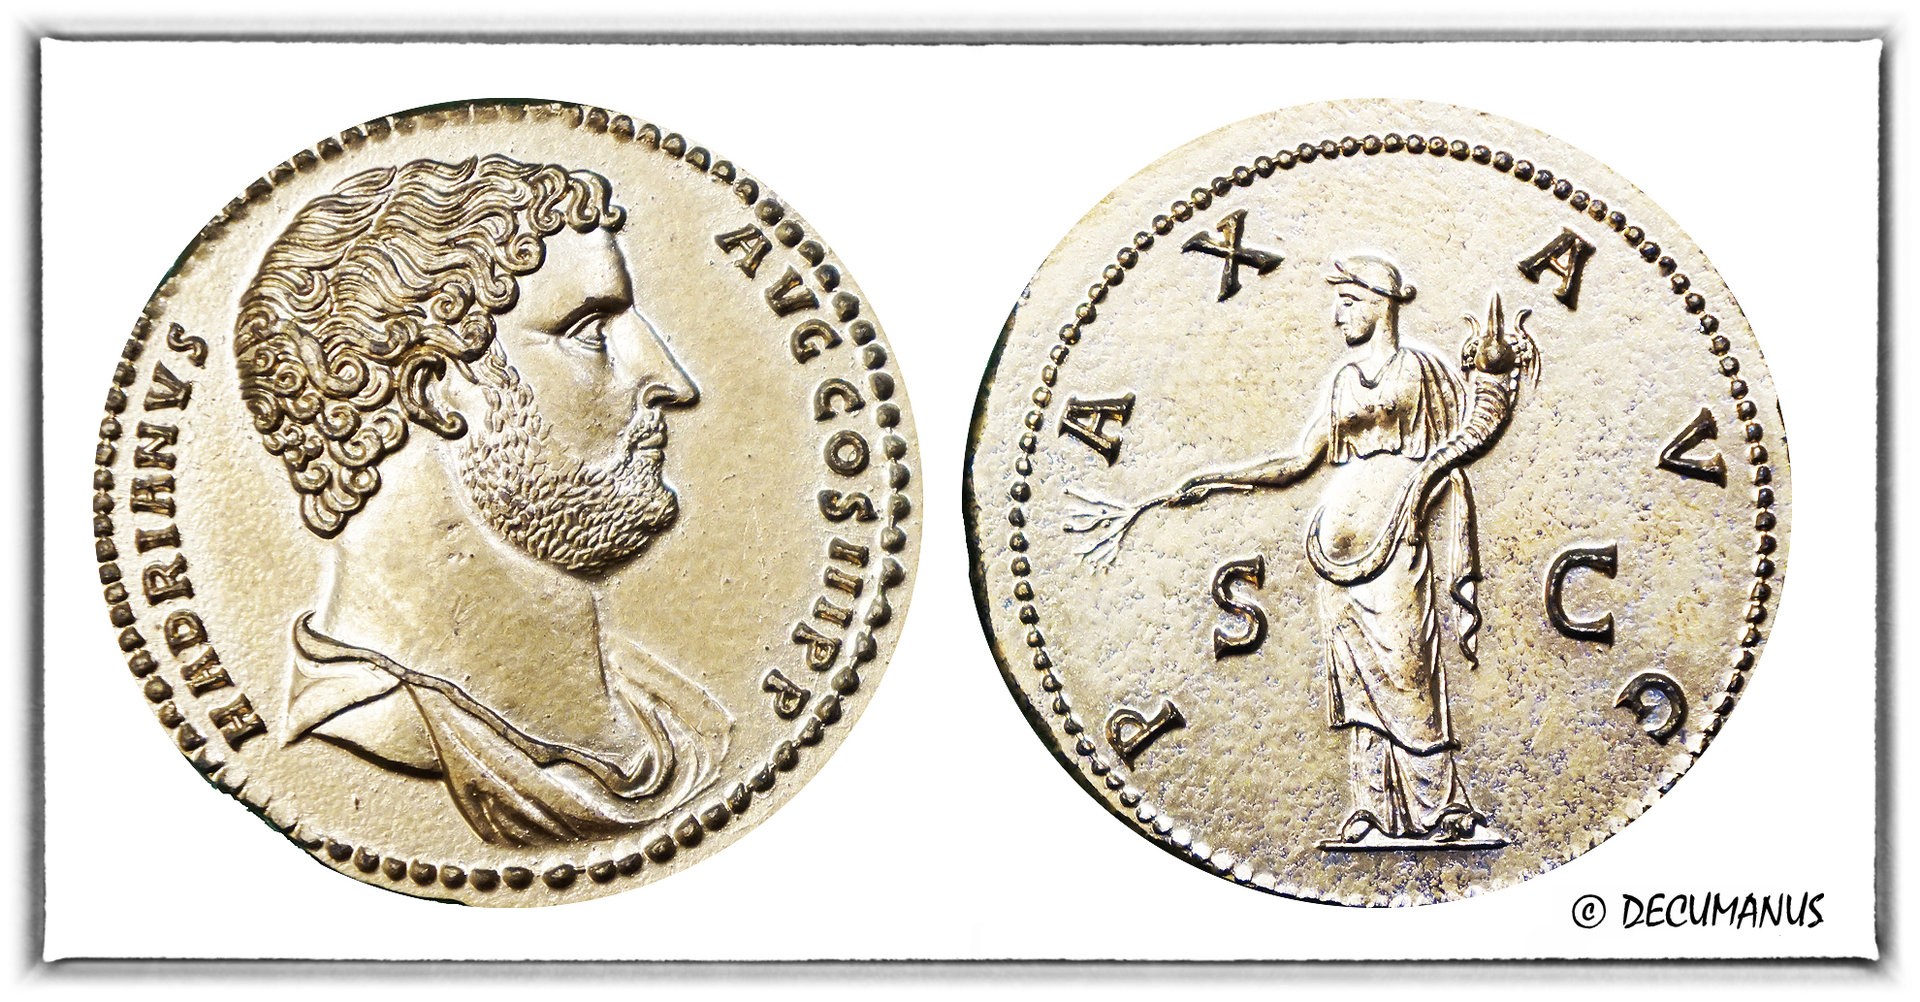 SESTERCE OF HADRIAN WITH THE PAX AVG - REPRODUCTION